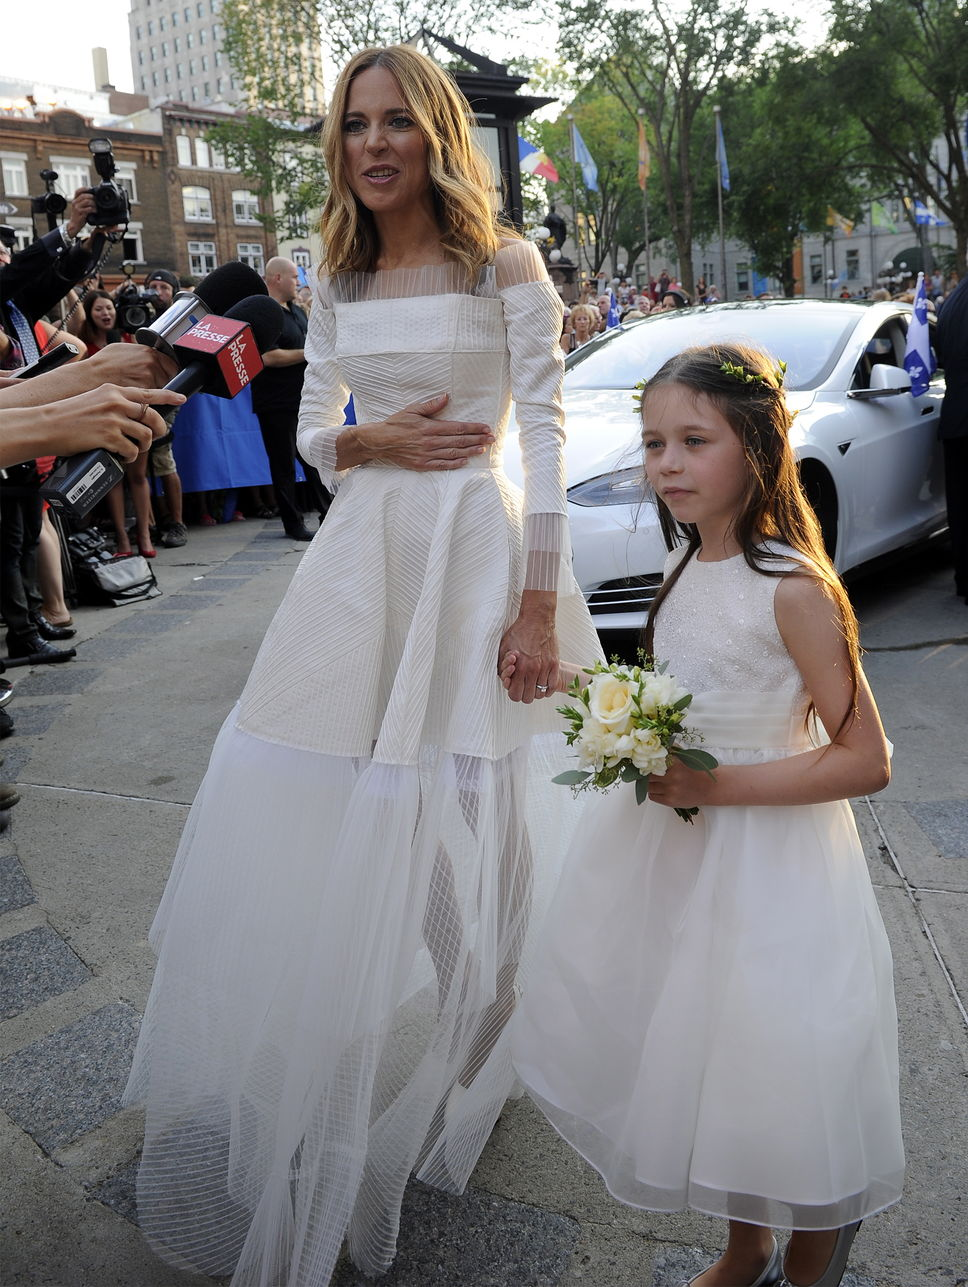 7 Best Ideas from celebrity weddings images | Celebrities ...